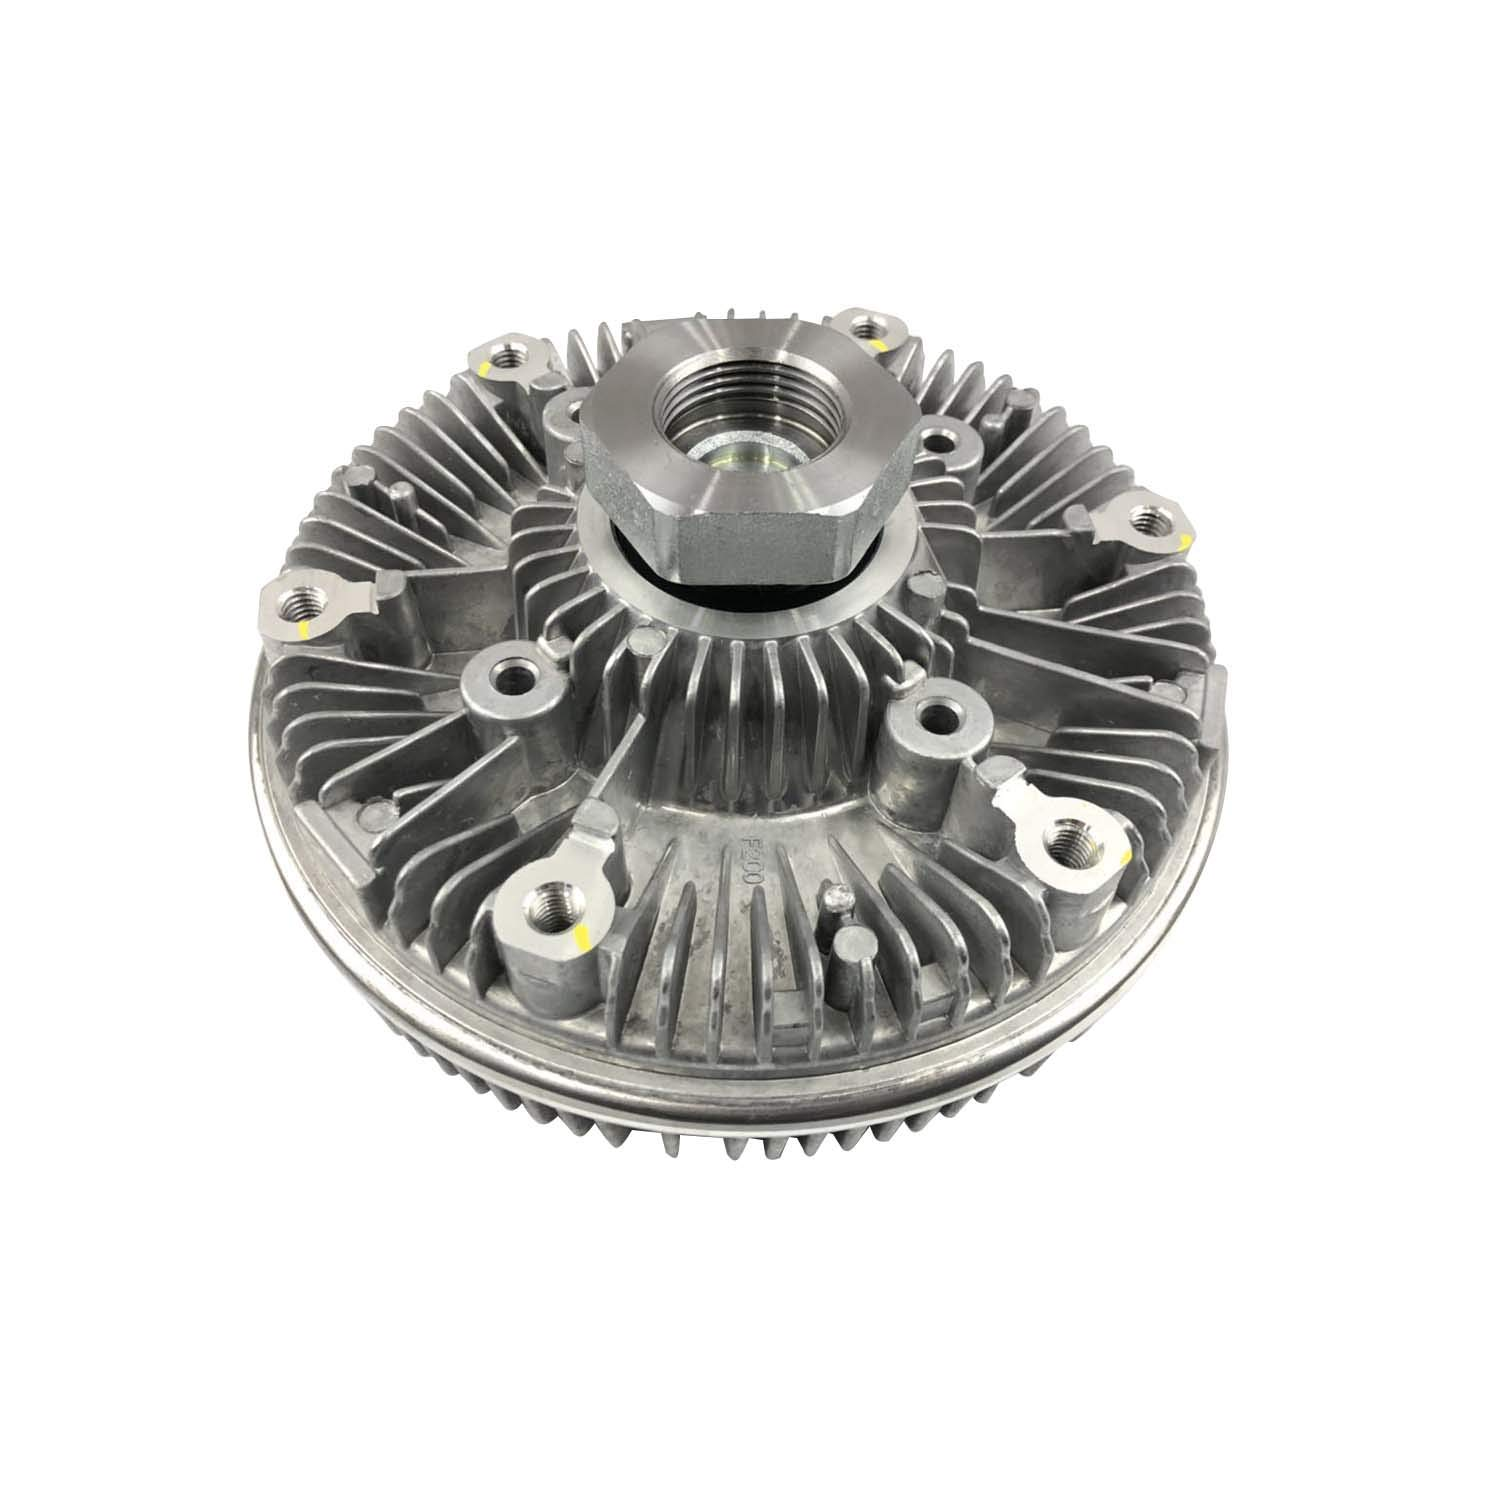 Engine Cooling Fan Clutch Radiator Fan Clutch for 2006 2007 2008 2009 2010 Chevy GMC Silverado 2500 3500 HD//Classic Sierra 2500 3500 HD Classic LS LT LTZ SL SLE SLT WT V8 6.6L Replace# 2850